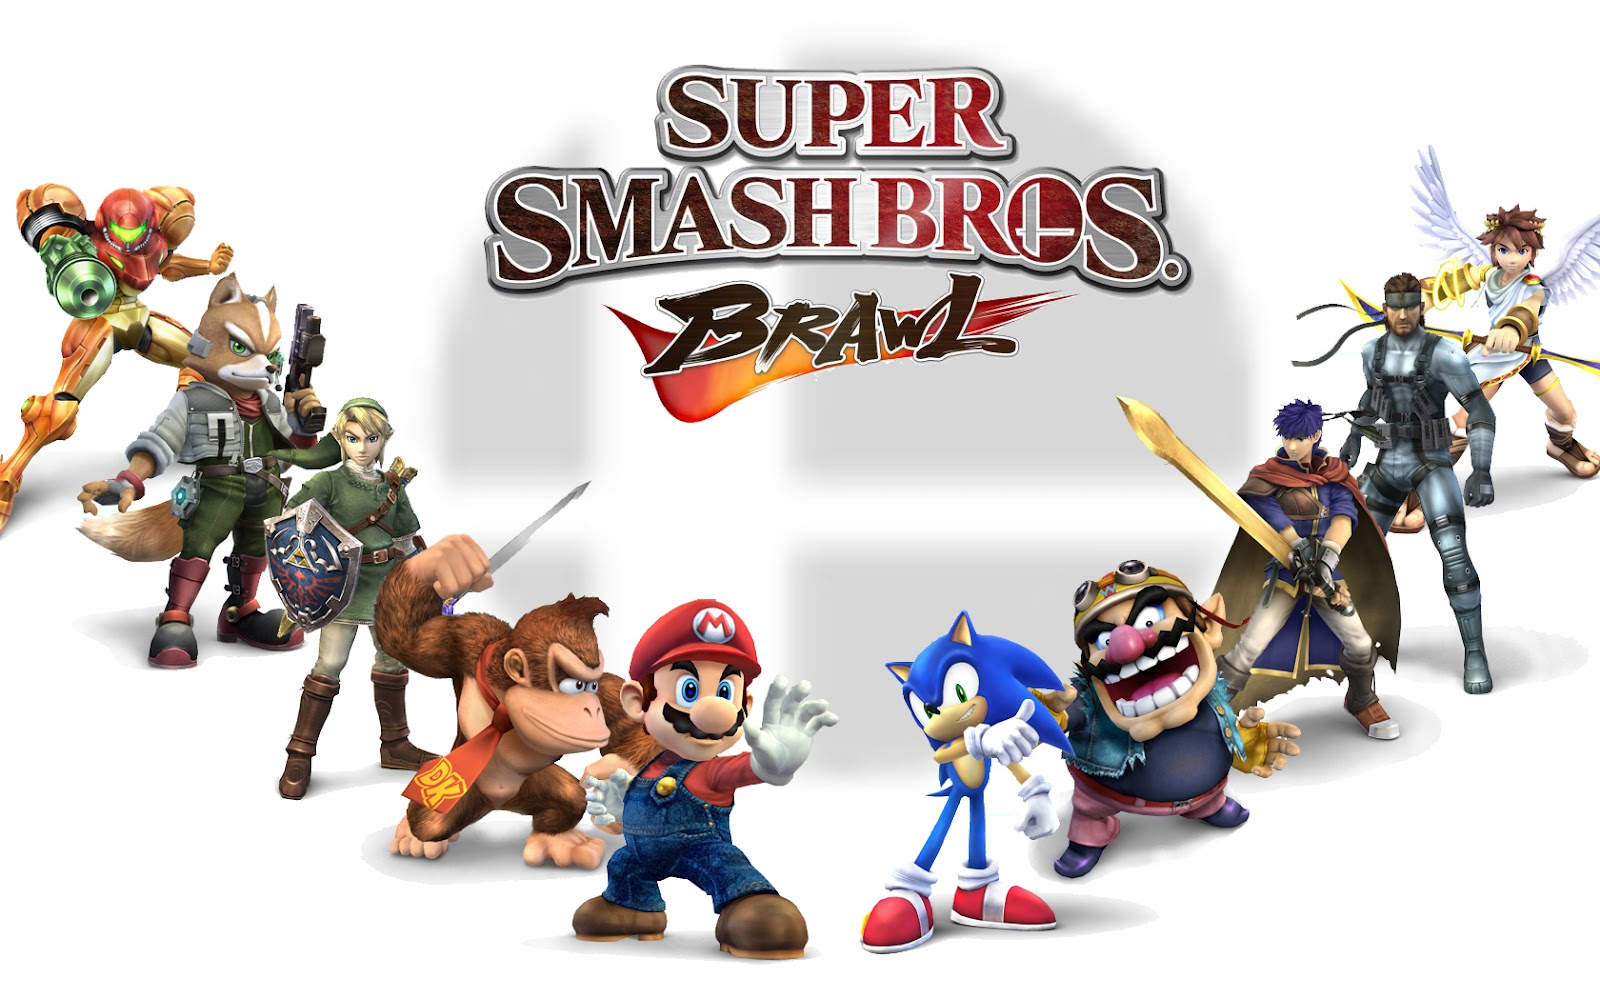 Video Game Gallery Super Smash Bros Brawl Wallpaper